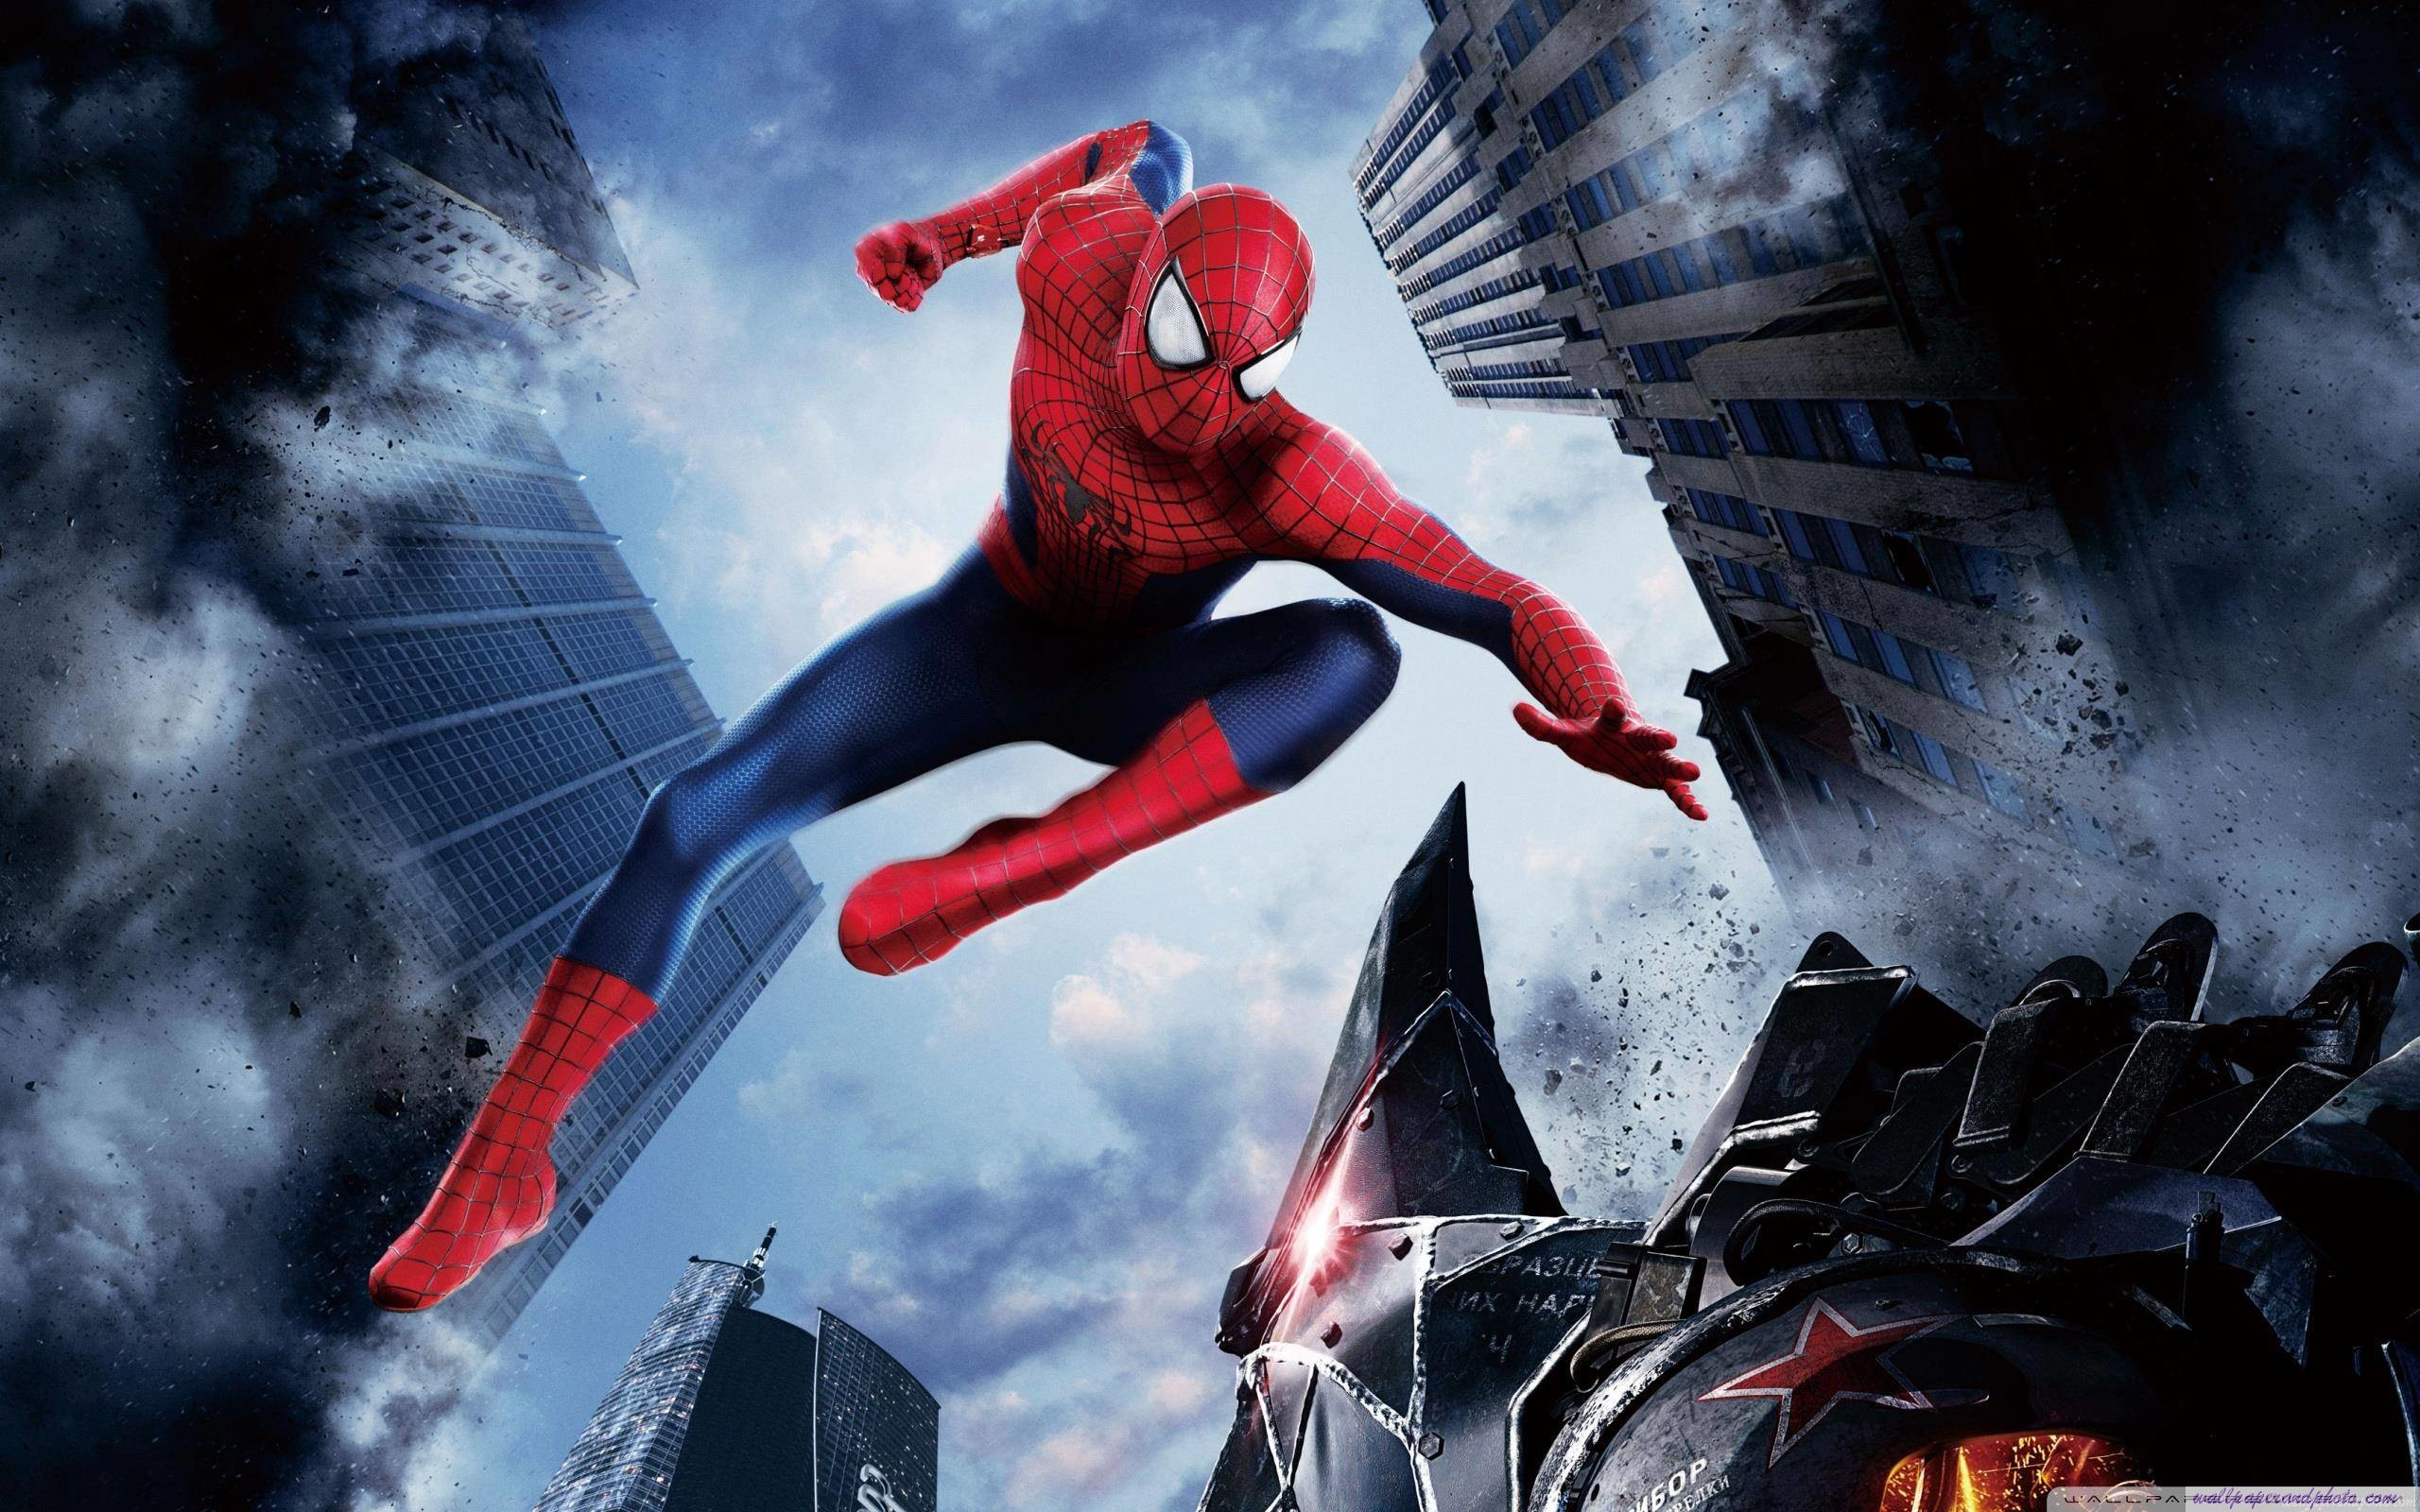 Spider man homecoming wallpapers 63 images - Man wallpaper ...